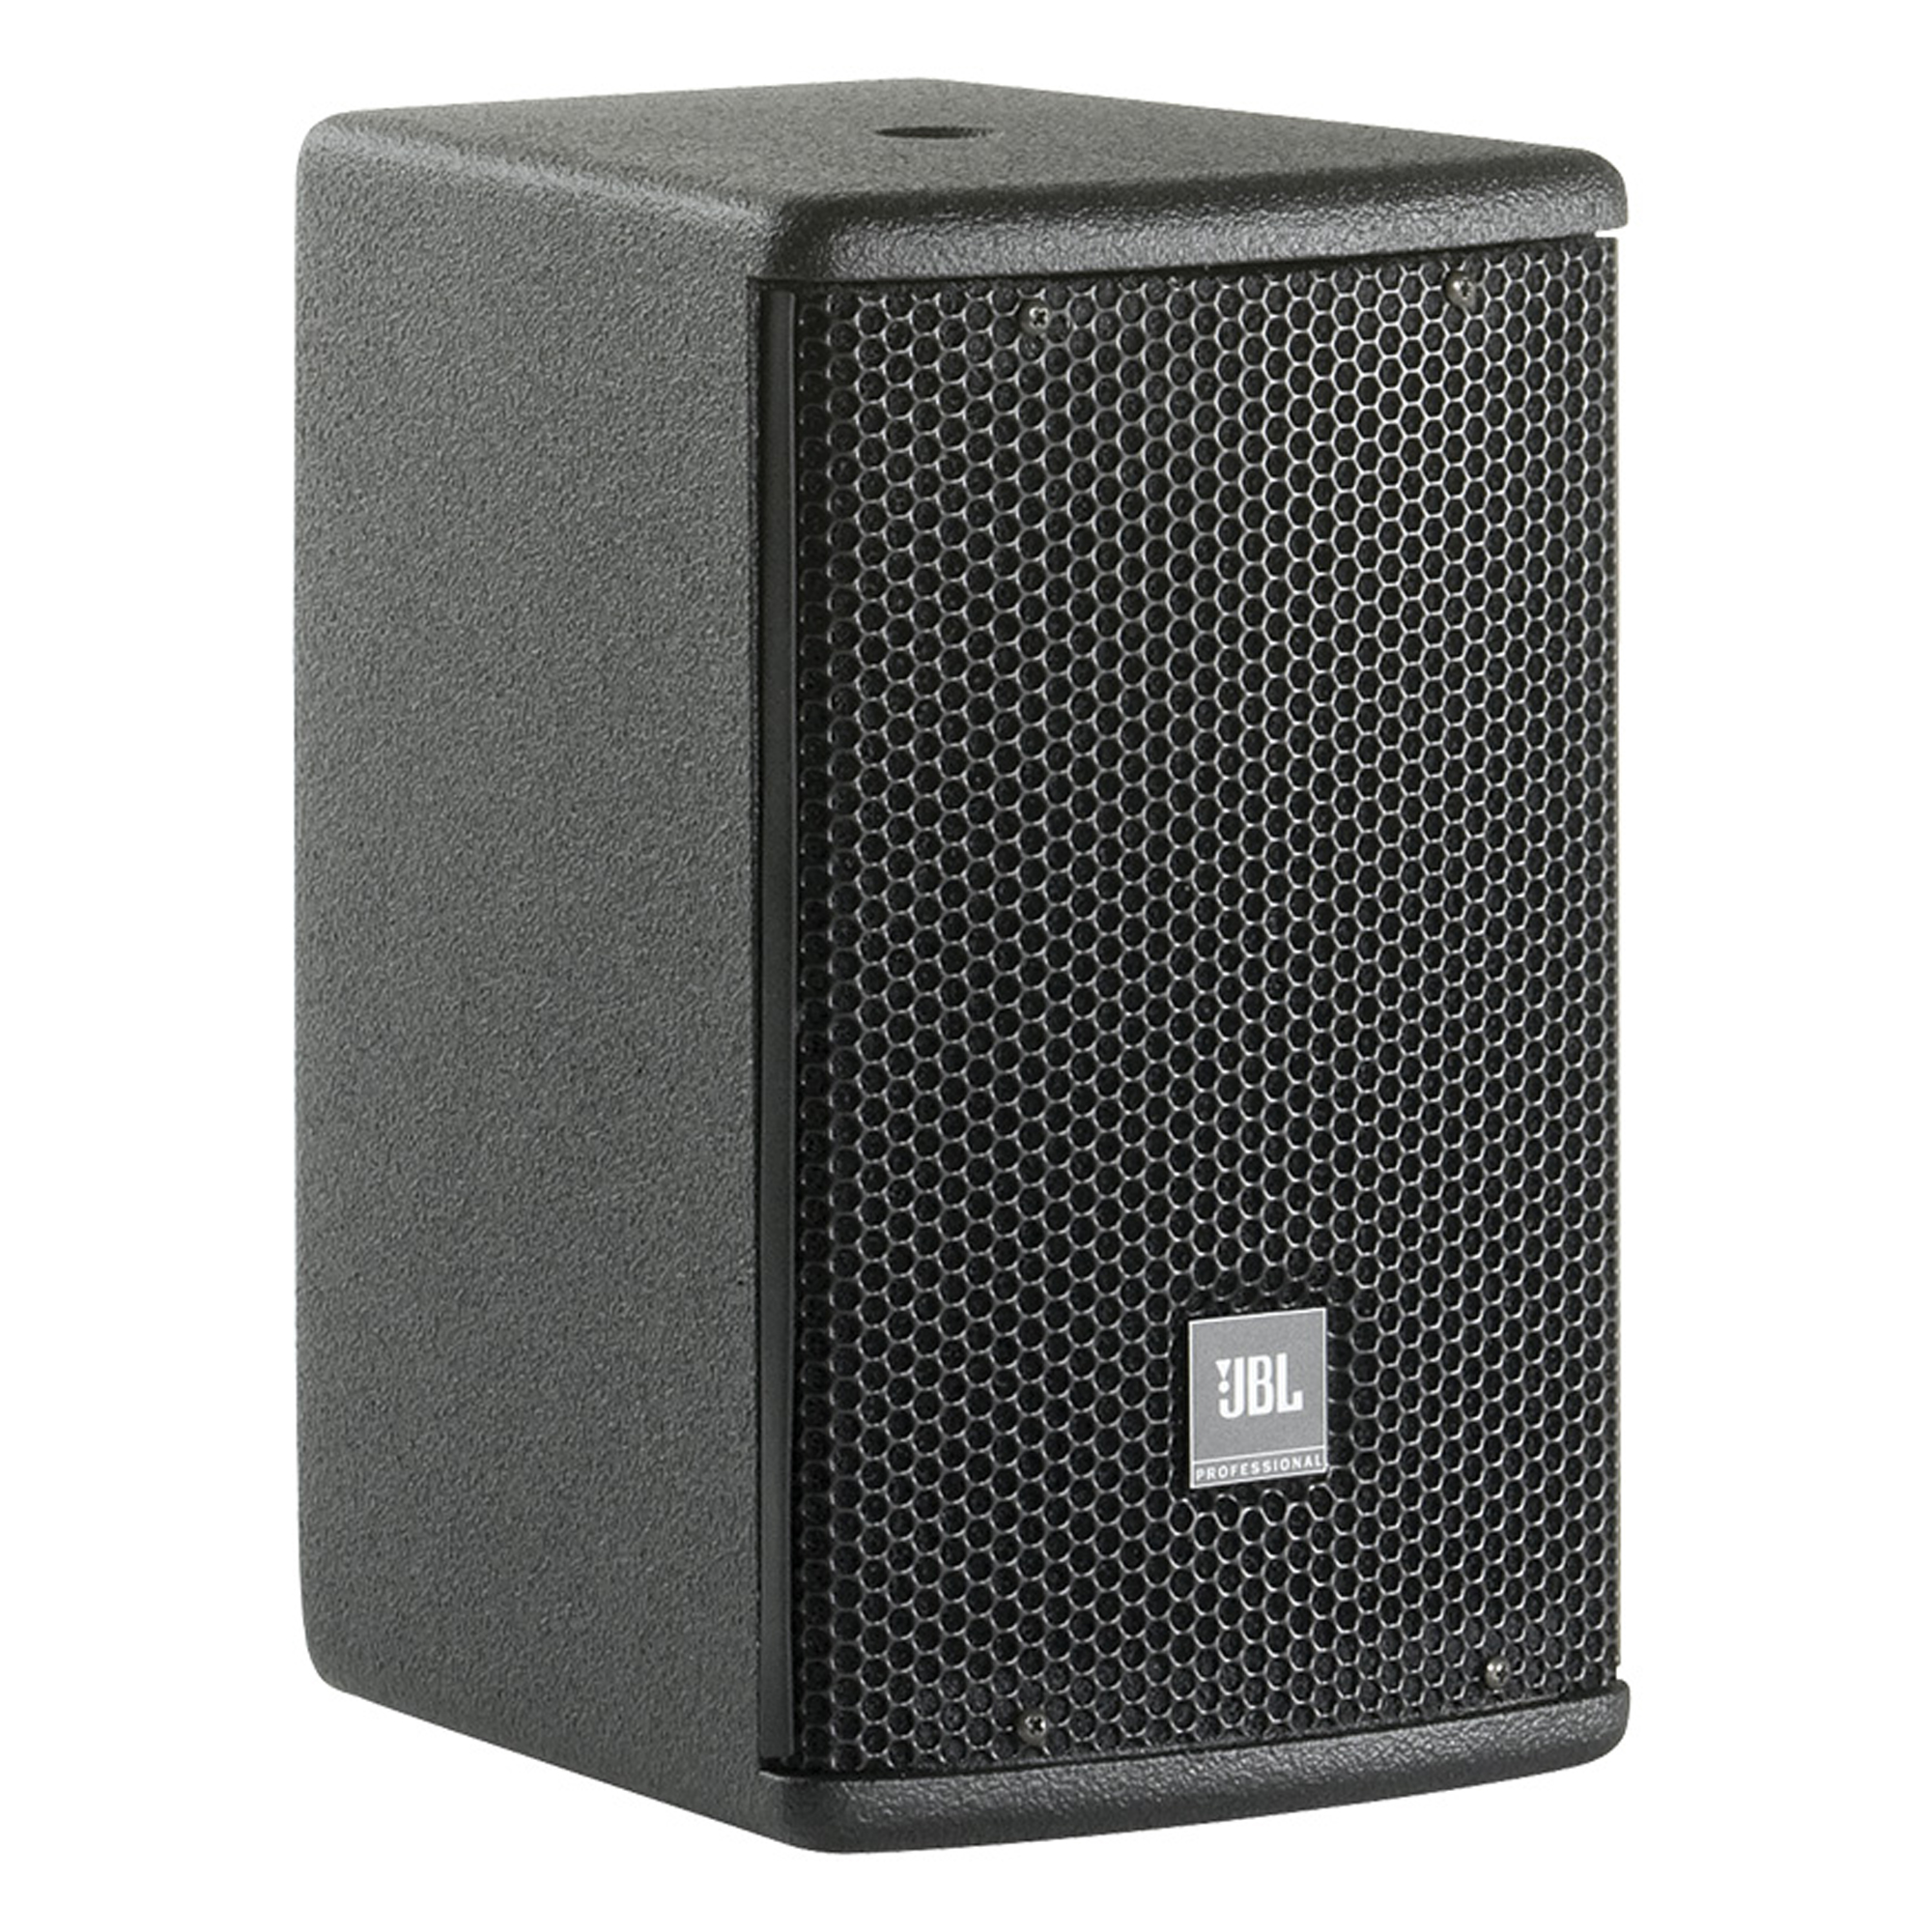 "Ultra Compact 2-way Loudspeaker with 1 x 5.25"" LF"